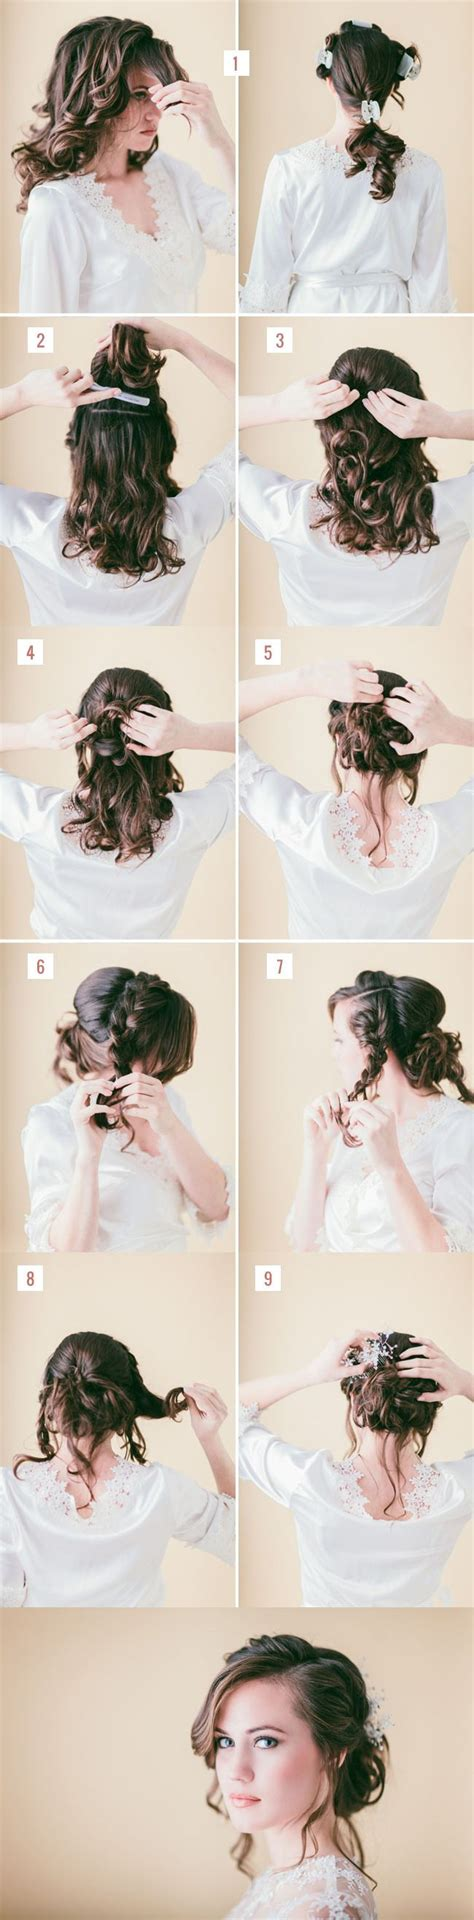 Homecoming Hairstyles For Hair Tutorial by 10 Easy Tutorials To Make Wedding Hair Pretty Designs